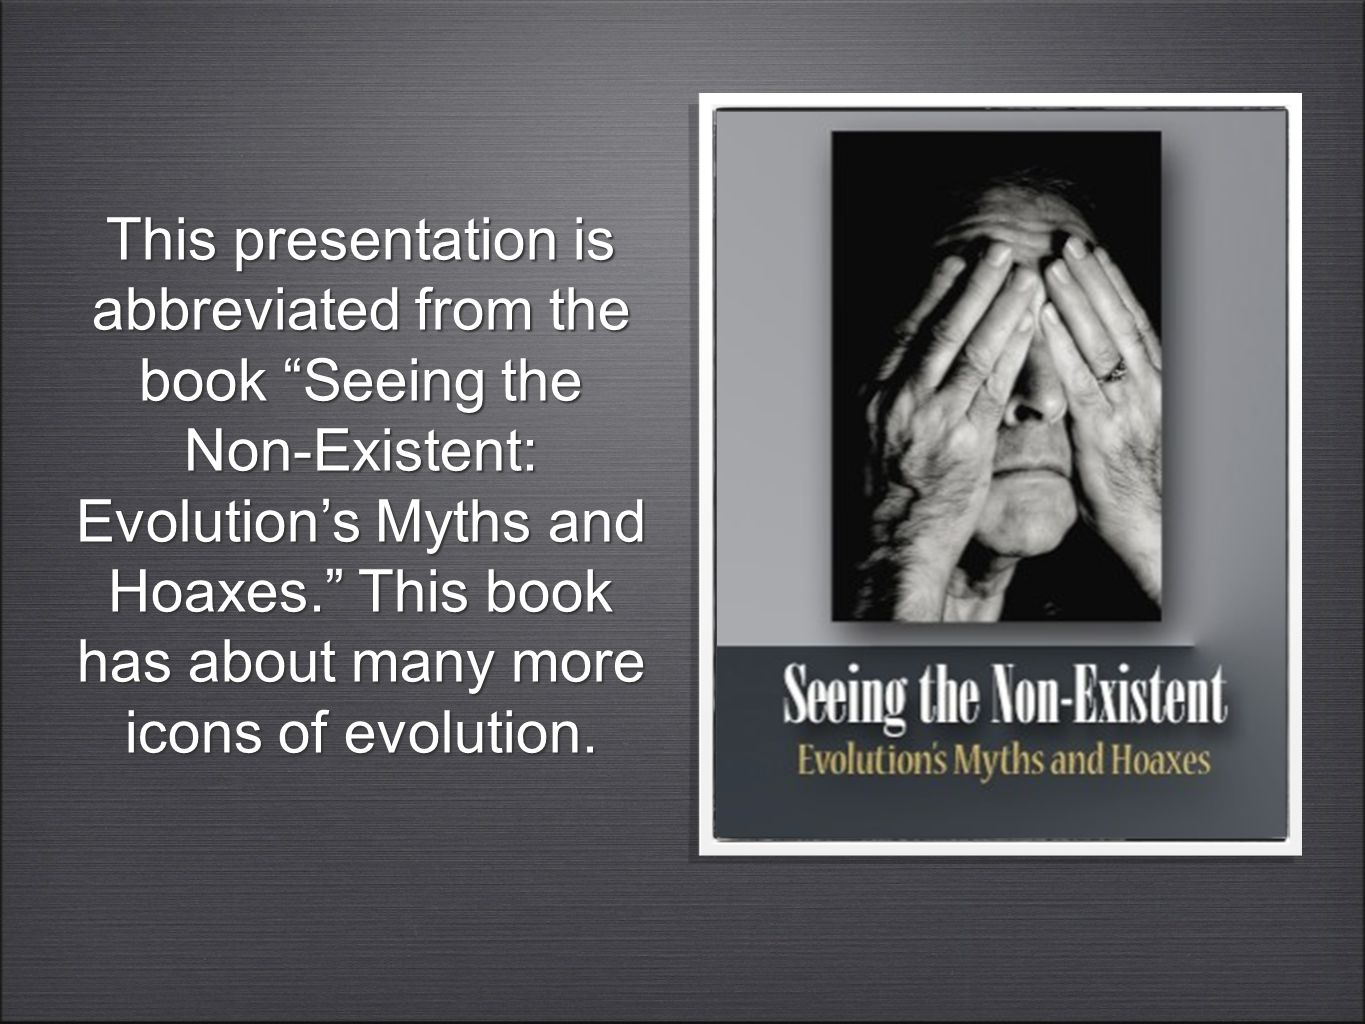 This presentation is abbreviated from the book Seeing the Non-Existent: Evolution's Myths and Hoaxes. This book has about many more icons of evolution.